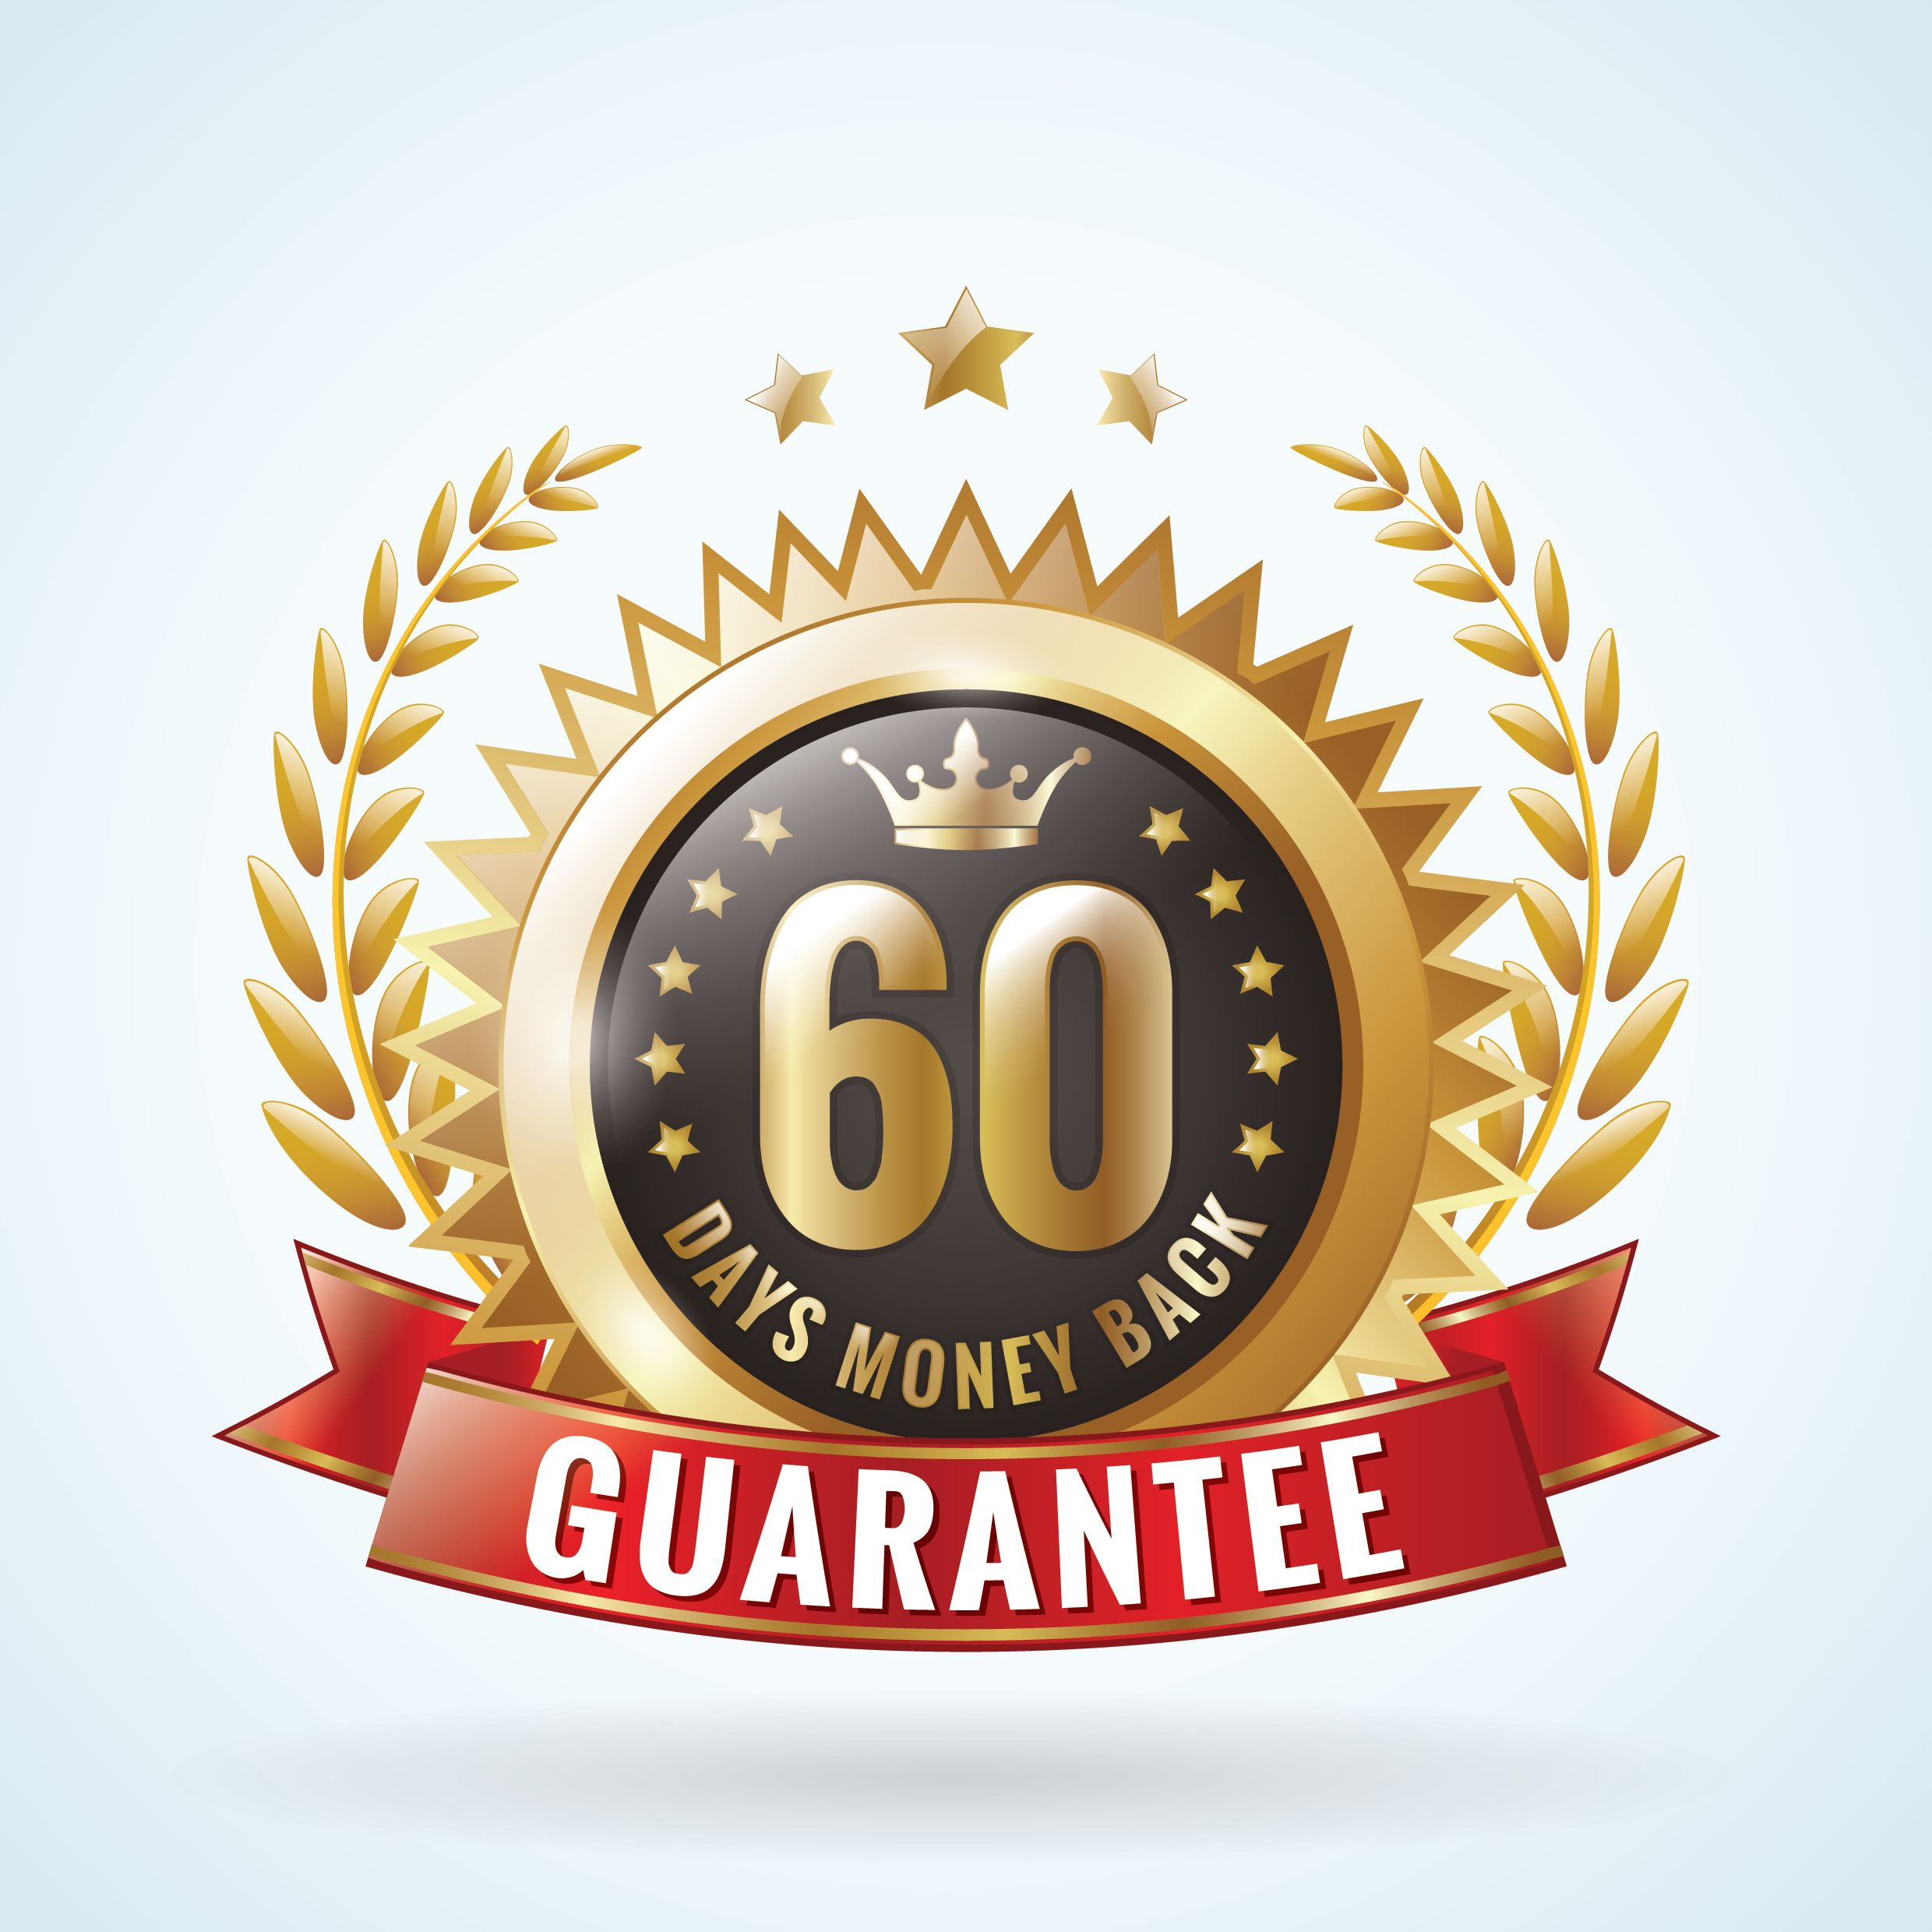 We stand behind our service with a 60-day guarantee.